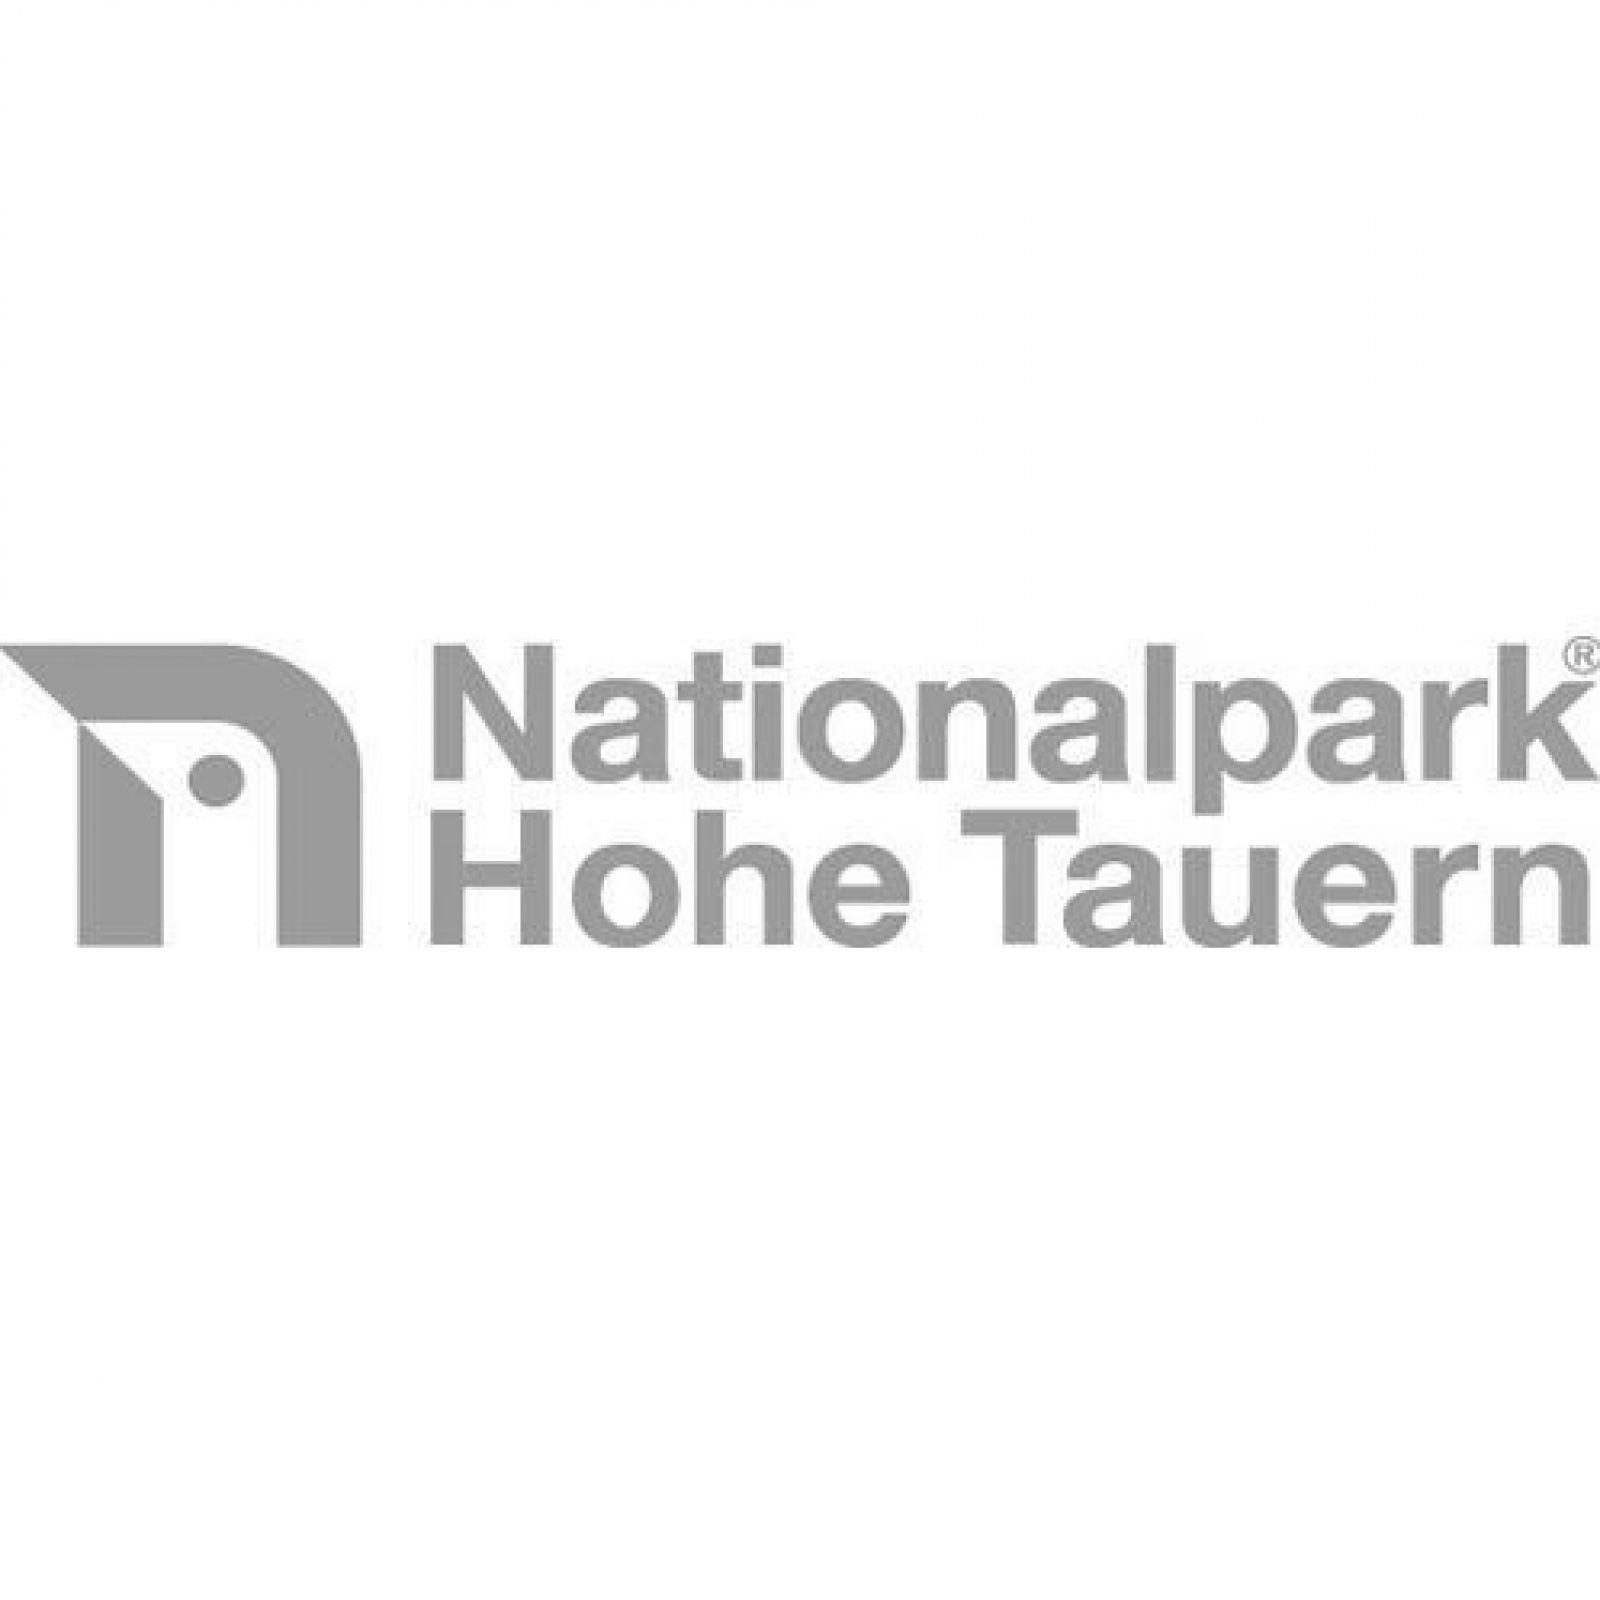 q-nationalparkhohetauern